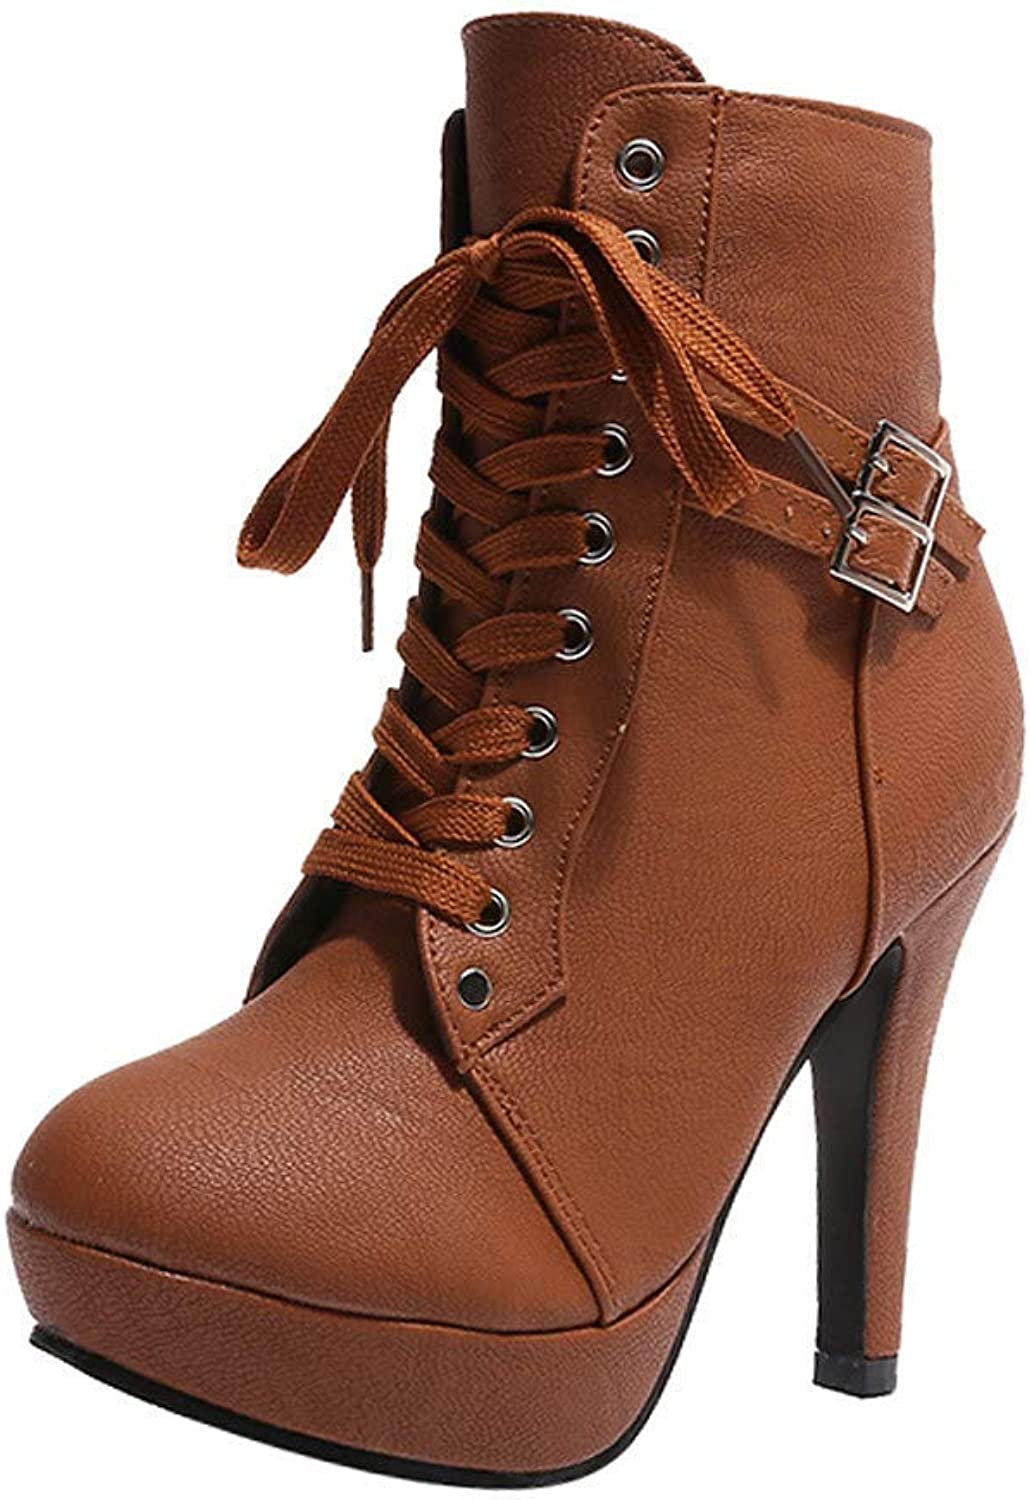 Stiletto Heeled Boots, Fashion Women Ankle Lace-up Round Toe Leather shoes